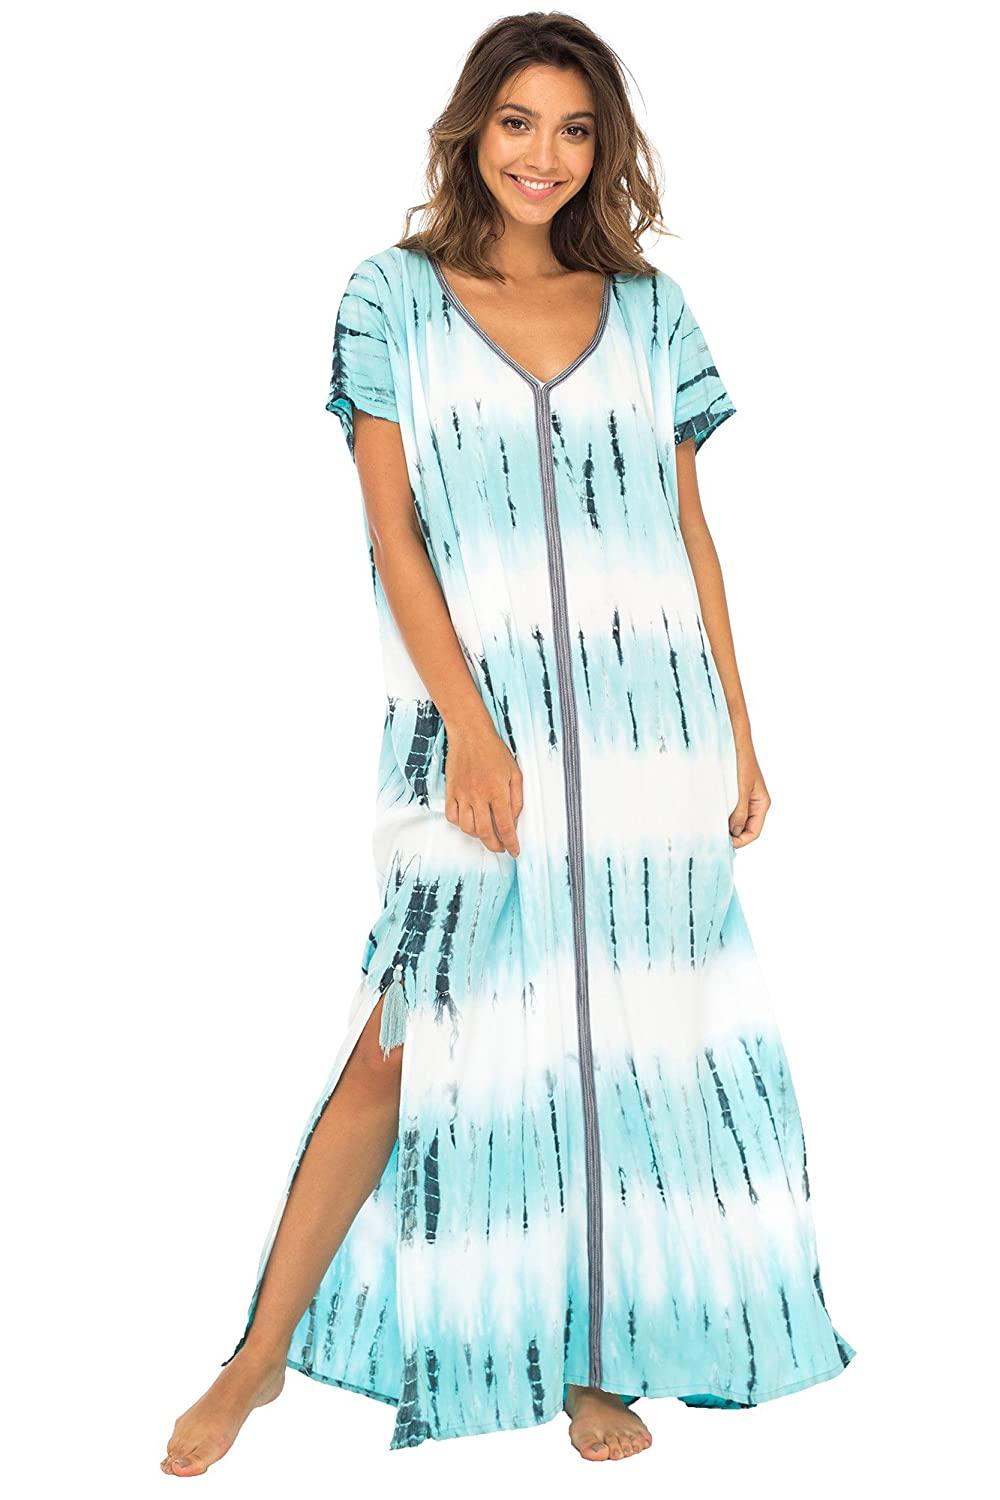 Back From Bali Womens Long Swimsuit Bathing Suit Cover up Maxi Beach Dress Boho Striped Summer Dress Caftan Marine